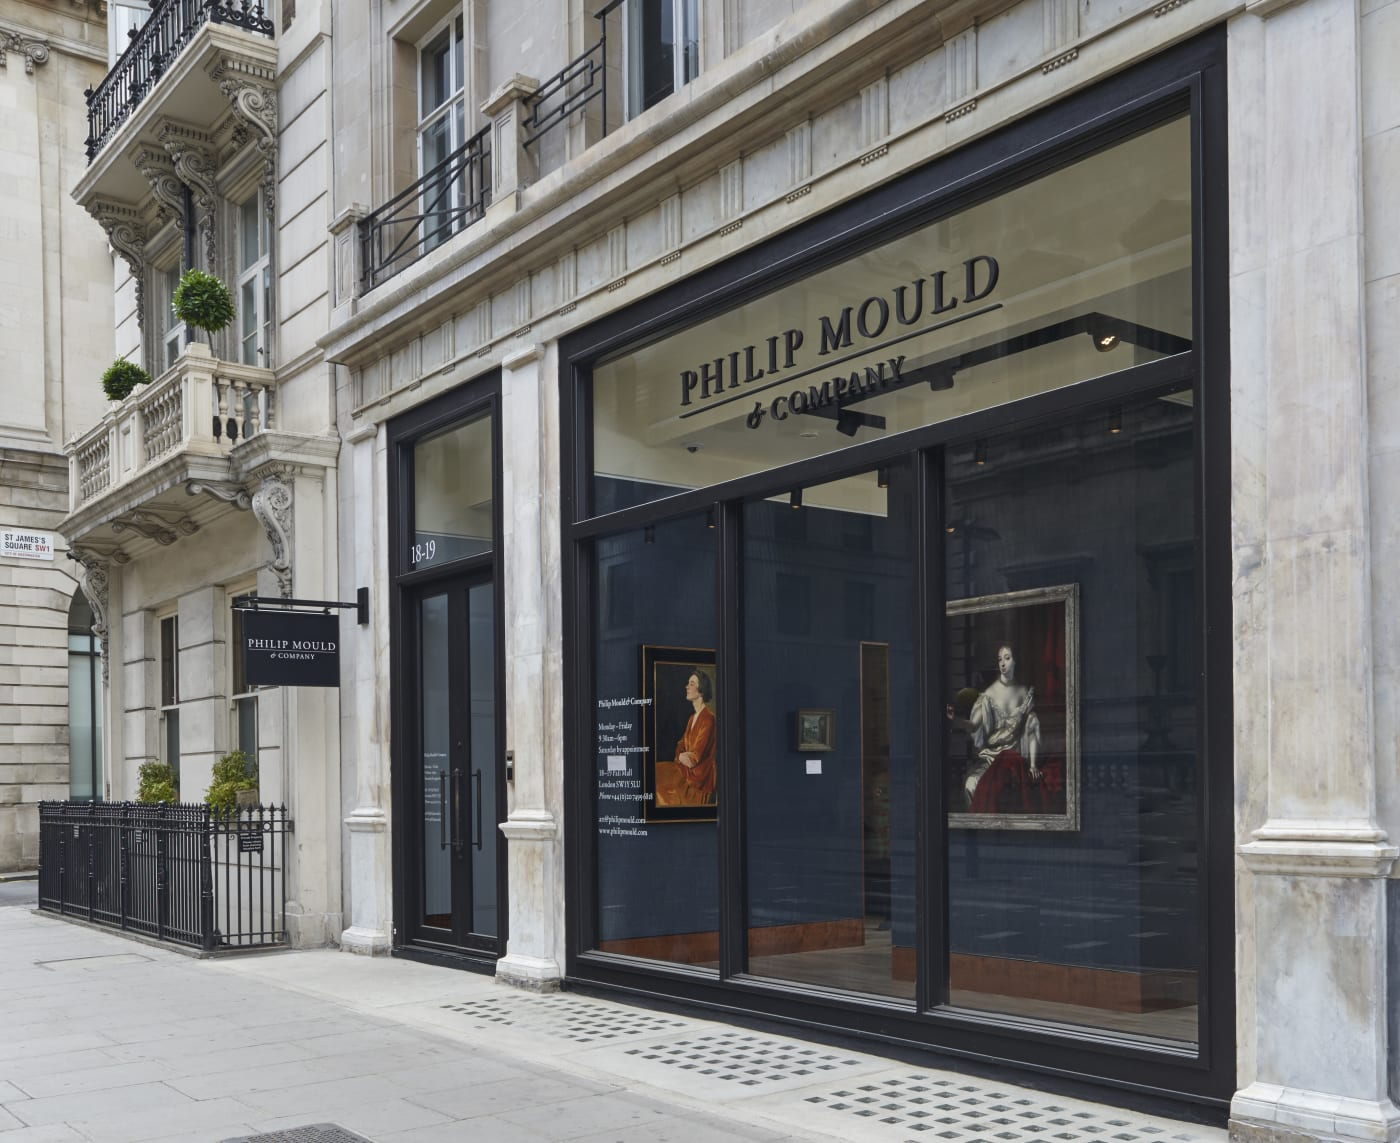 Philip Mould & Company 18-19 Pall Mall